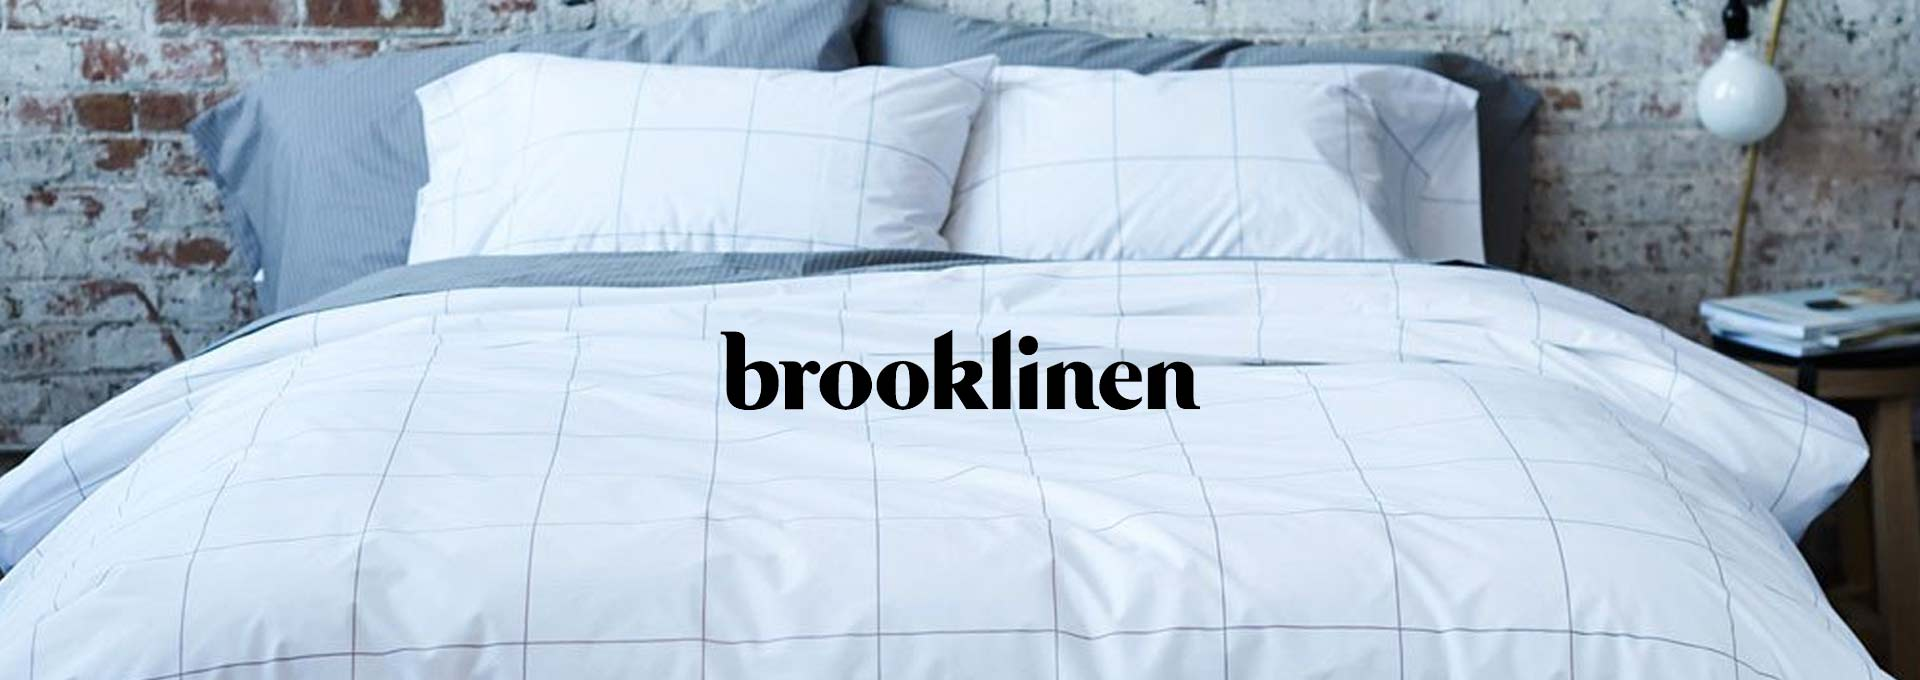 Brooklinen Sheets Review Finally A Solution To Bad Sheets